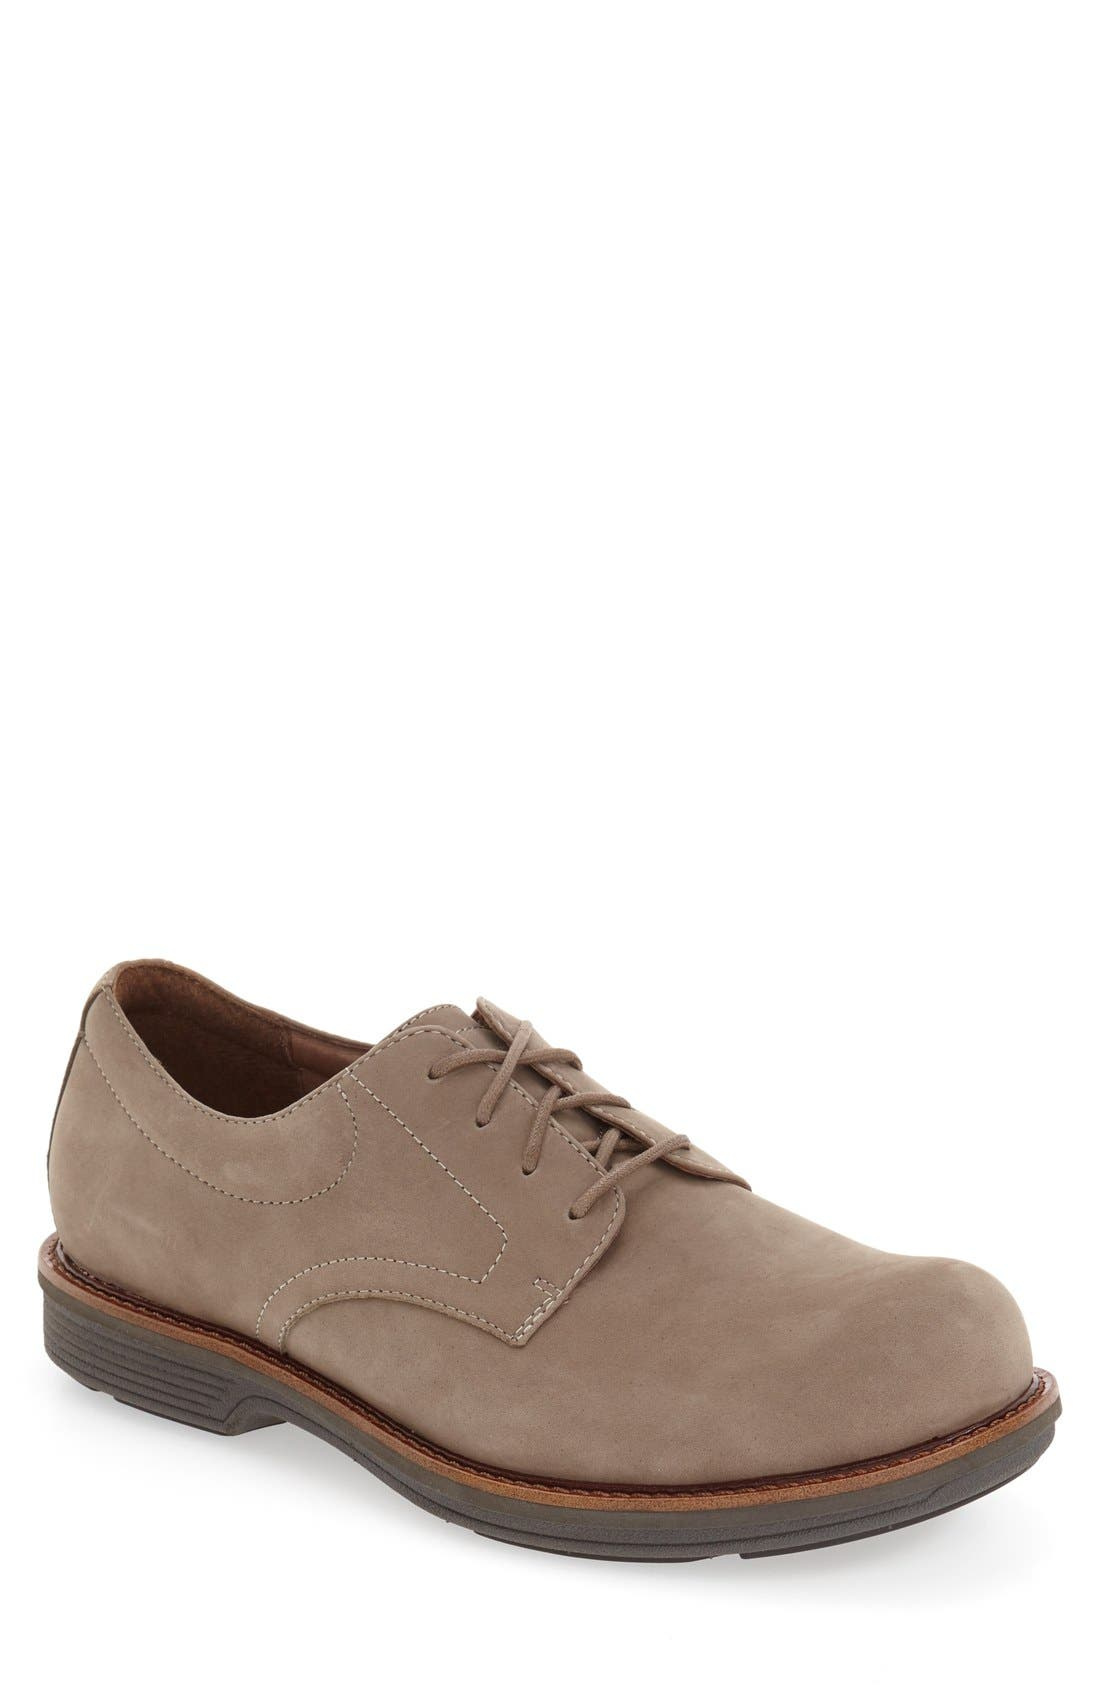 DANSKO 'Josh' Plain Toe Derby